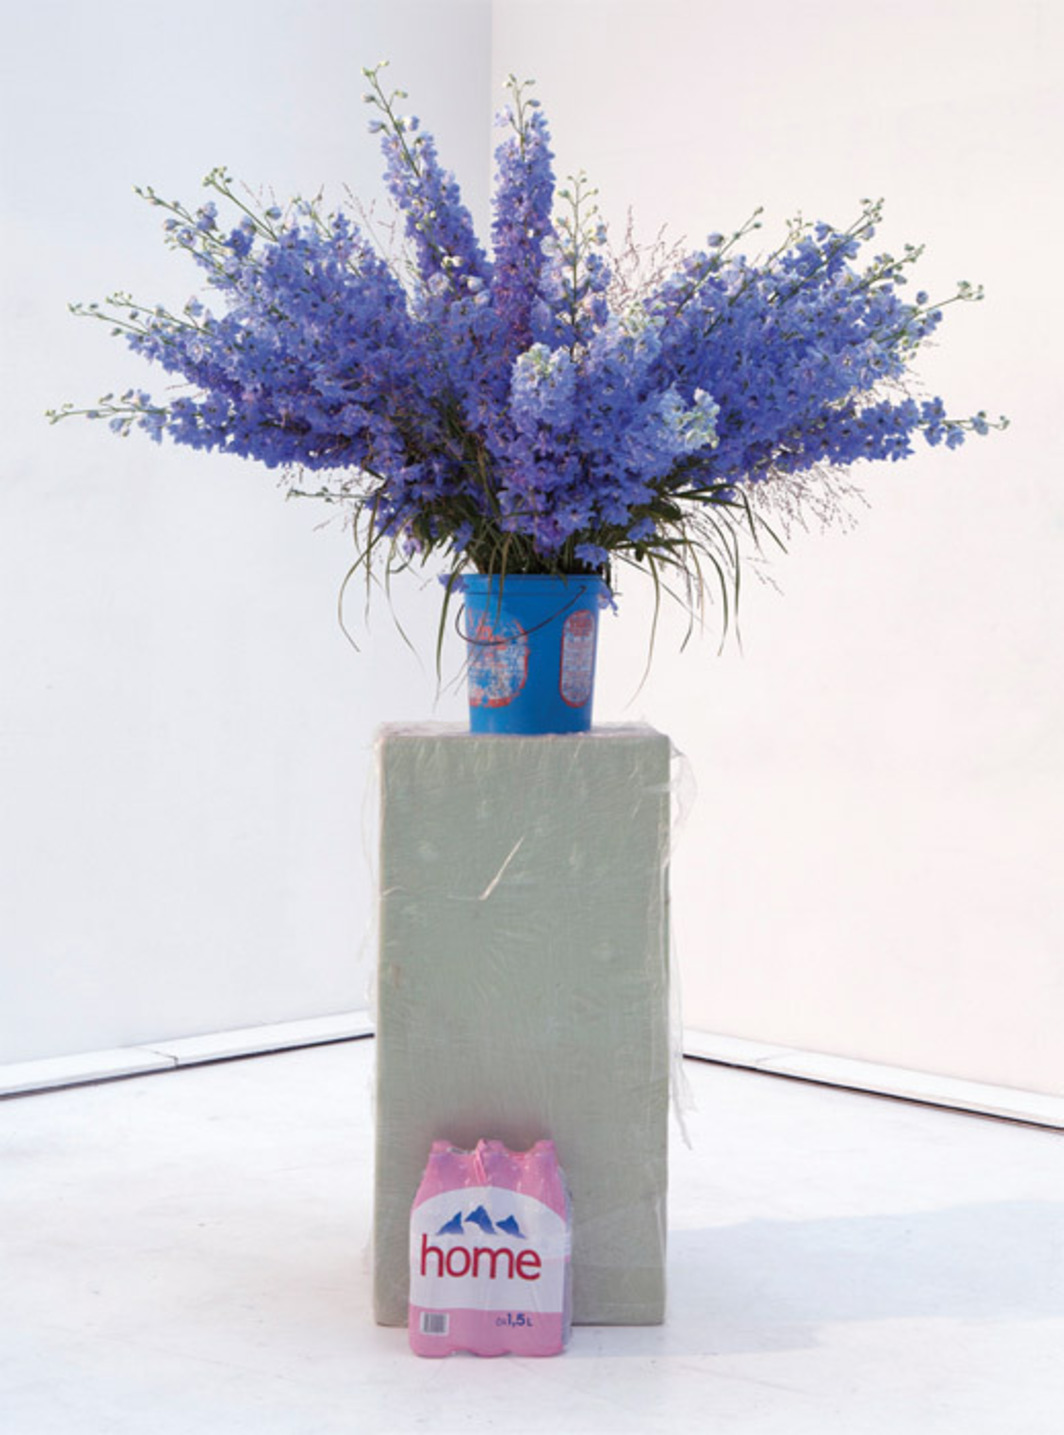 "Heike-Karin Föll, Delphinium-Bouquet and Elaine Scarry, 2012, foam, plastic sheet, pack of Evian bottles, plastic bucket, water, wire, fresh delphiniums, 70 7/8 x 31 1/2 x 31 1/2""."